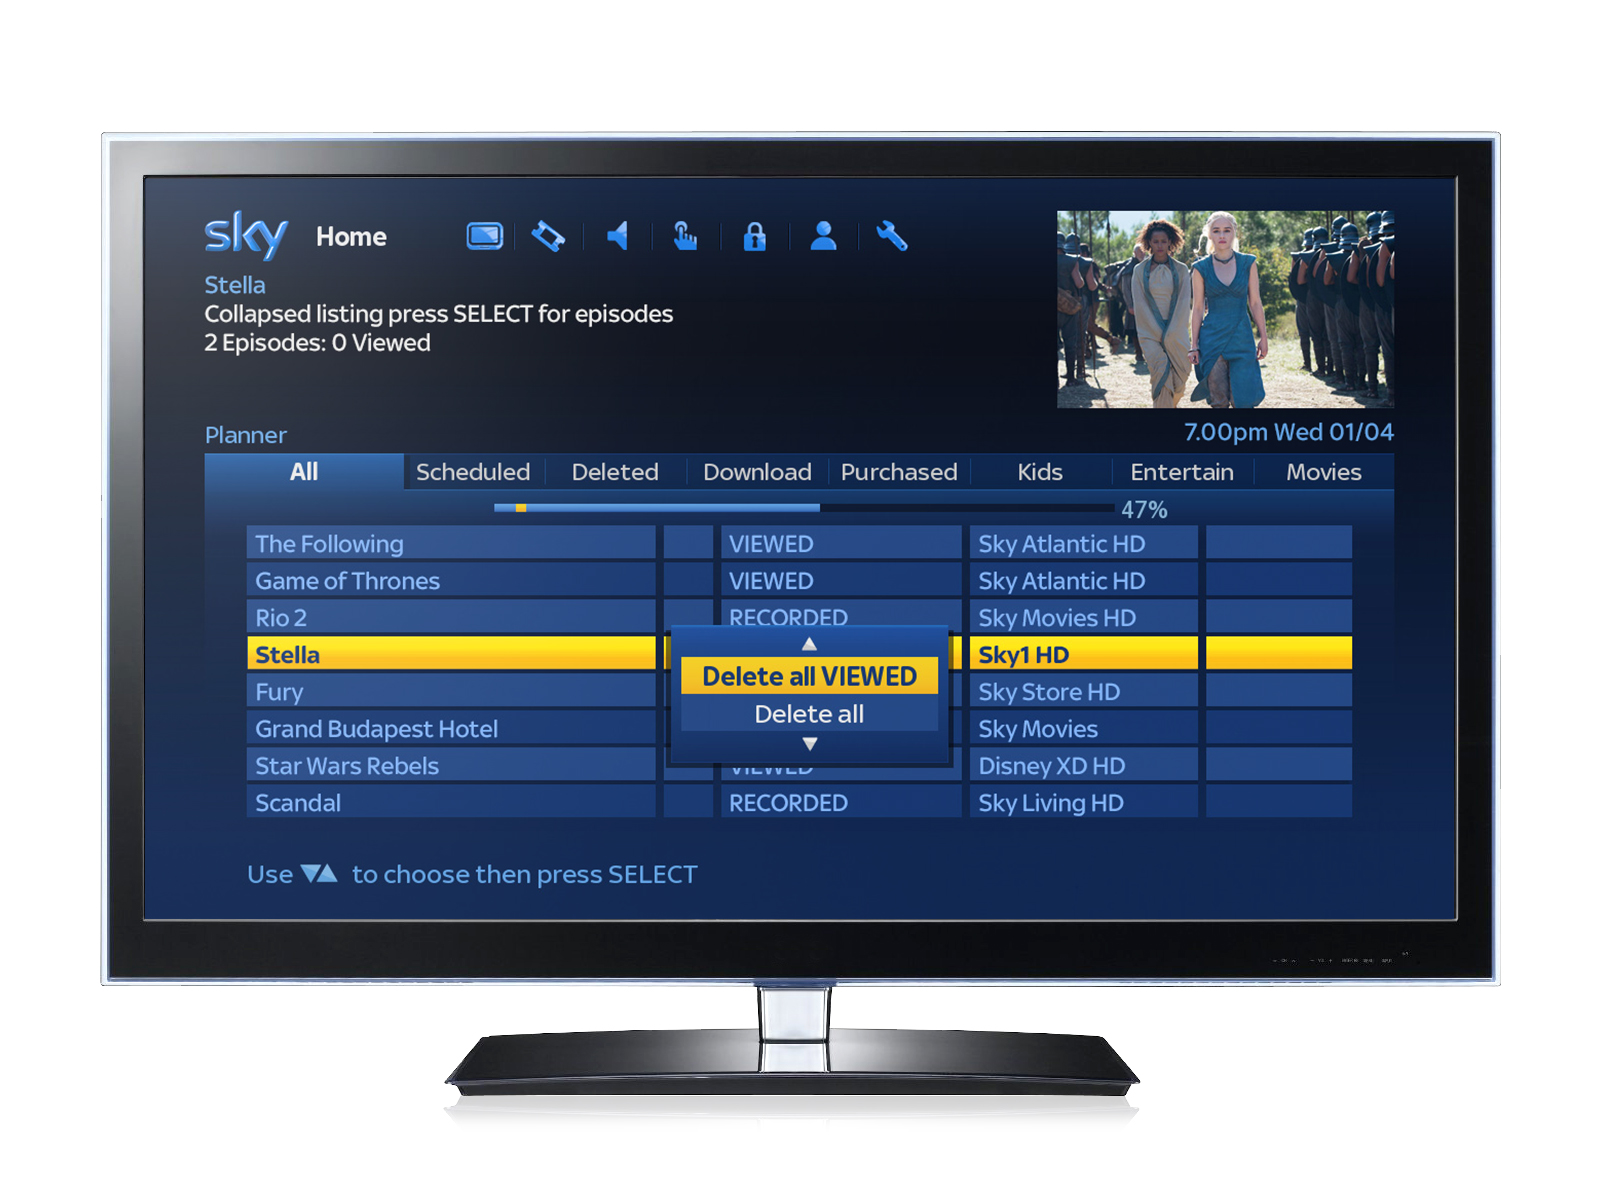 Sky announces improvements to TV Guide